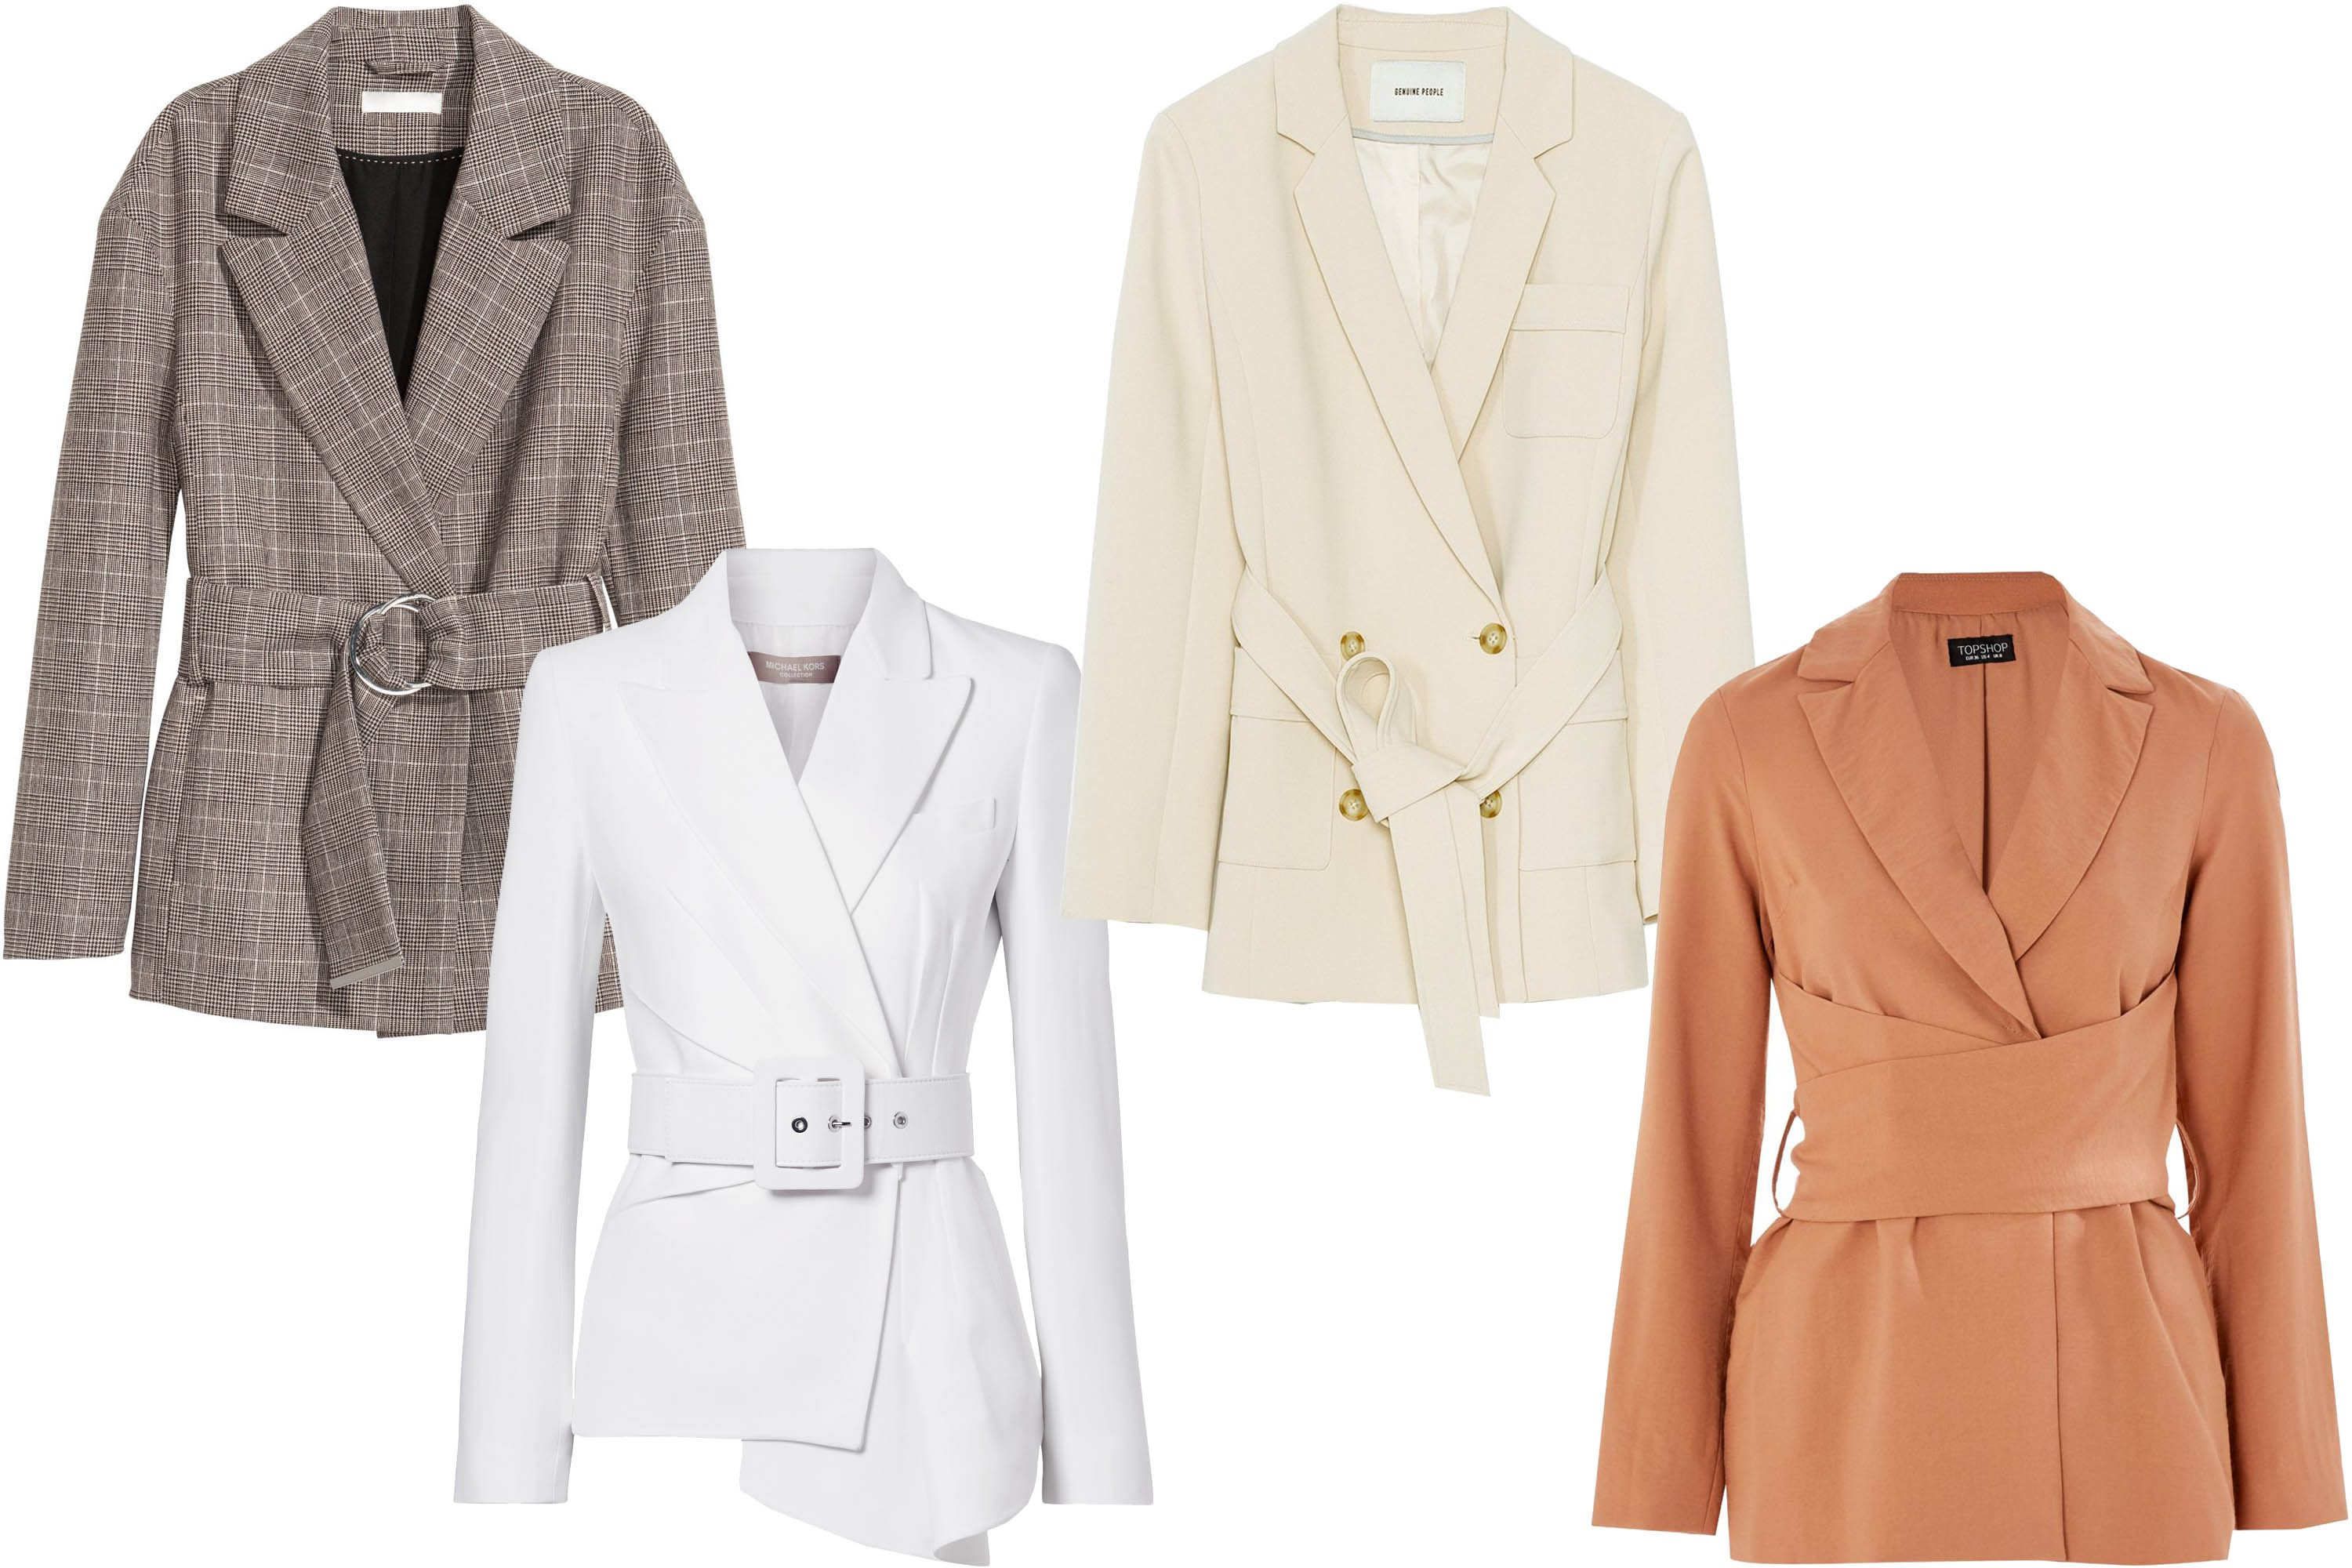 hbz-the-list-spring-jackets-belted-blazer-comp-1519143360.jpg (3000×2000)